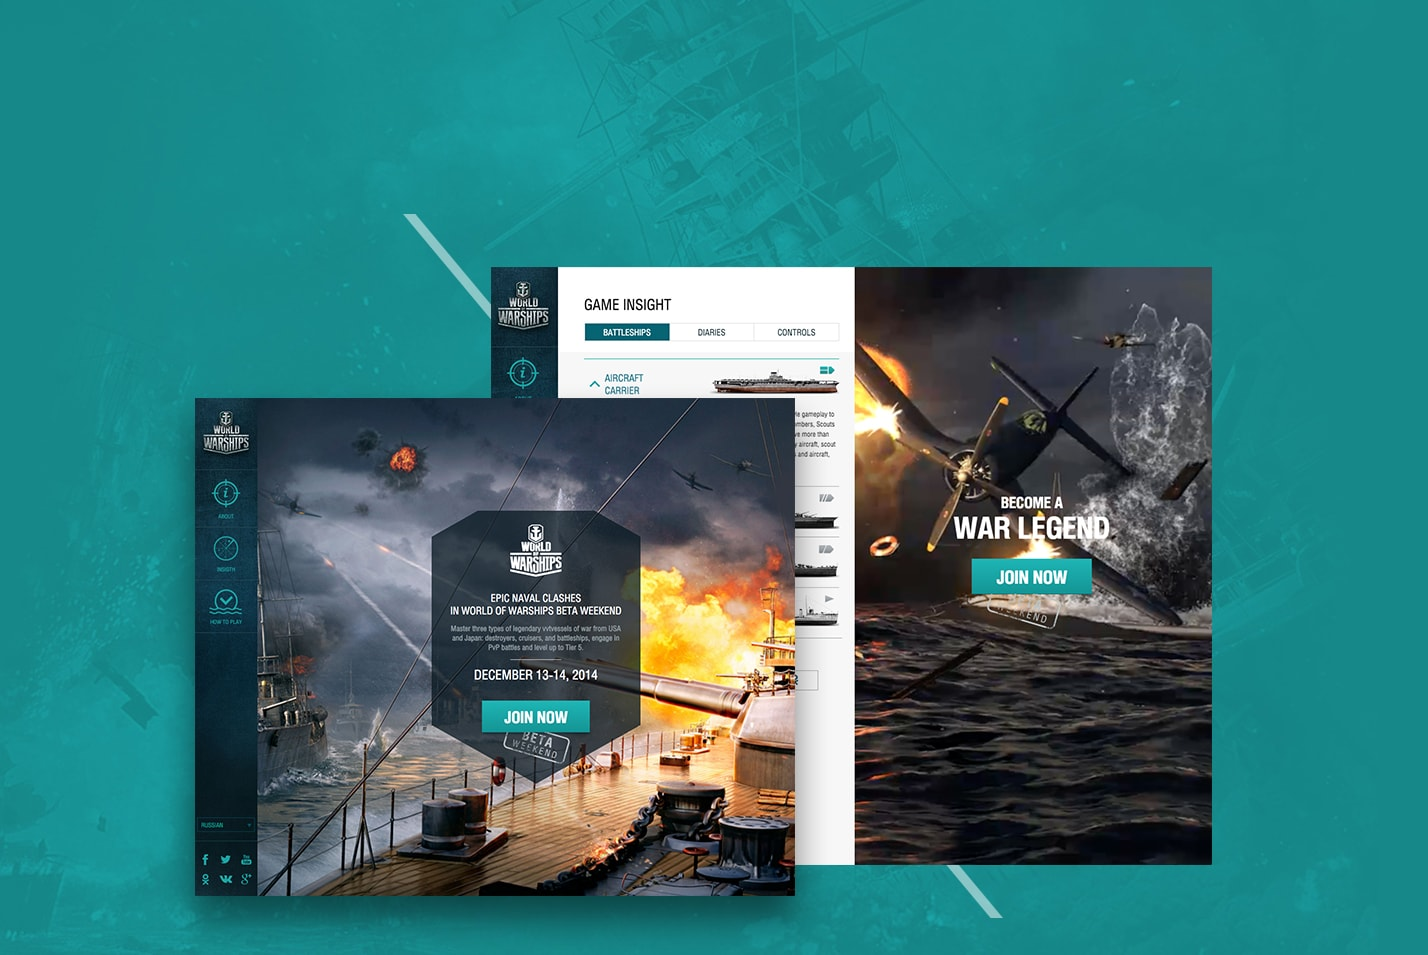 A website that was prepared for the beta testing of World of Warships